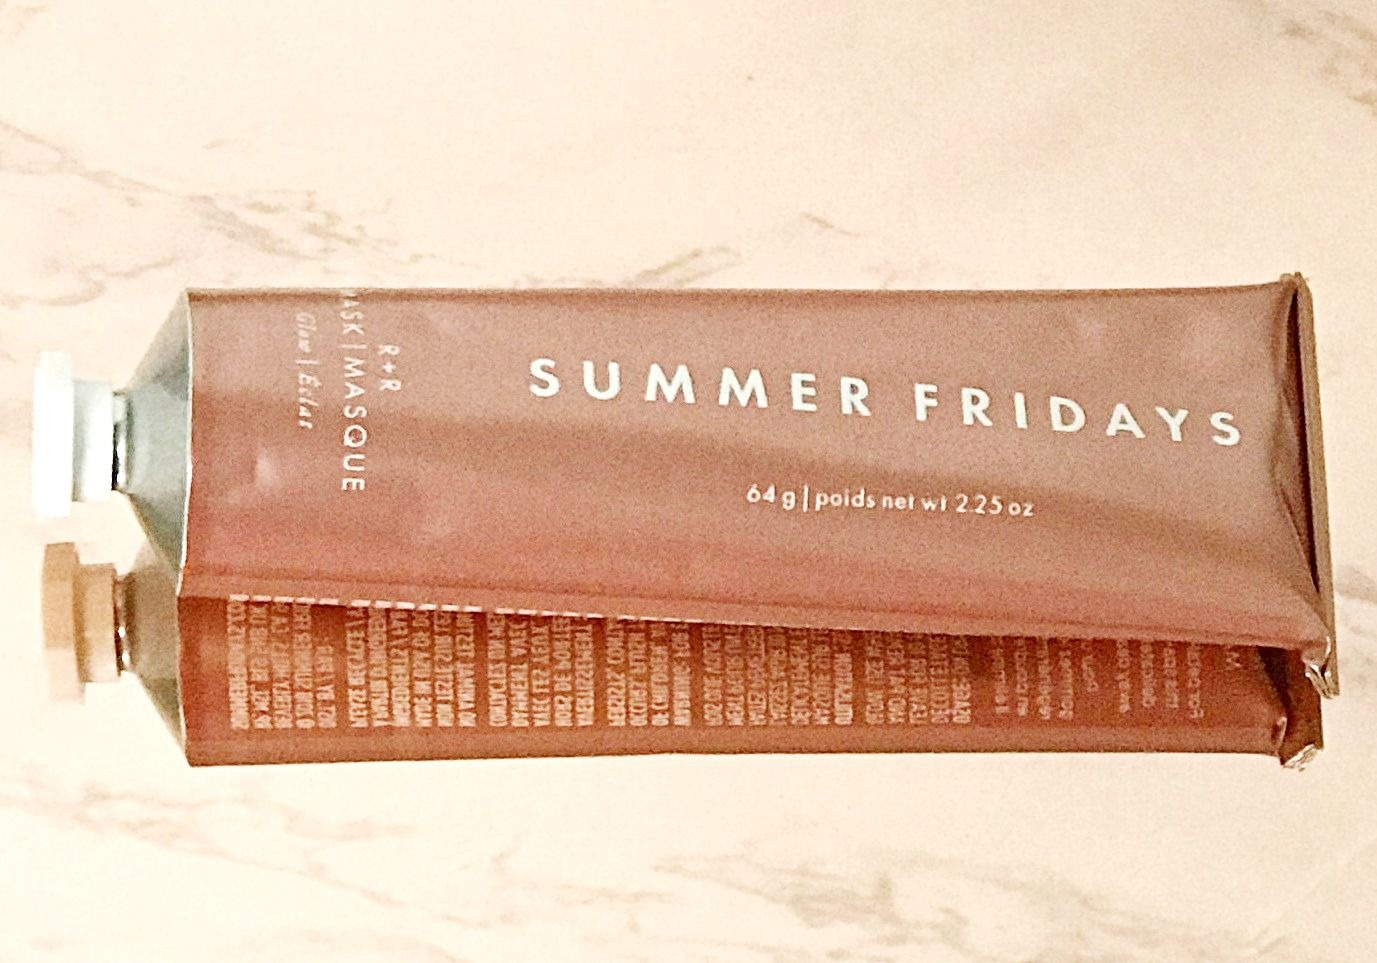 Summer Fridays R+R mask - smooth, glowing skin!